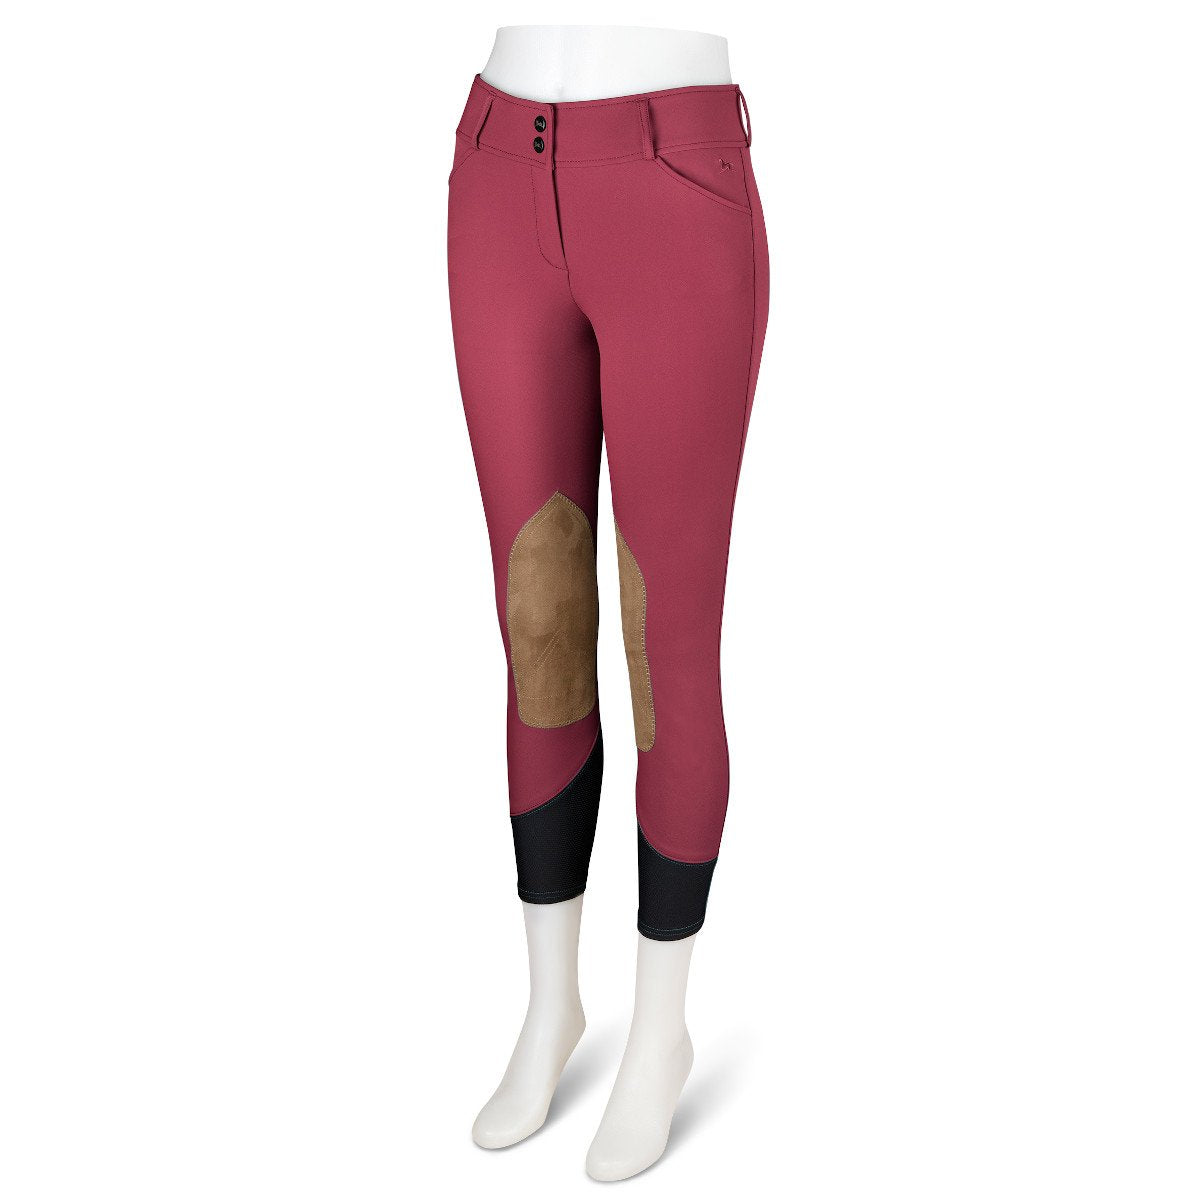 R.J. Classics Women's Strawberry Jam Gulf Natural Rise Front Zip Knee Patch Breeches